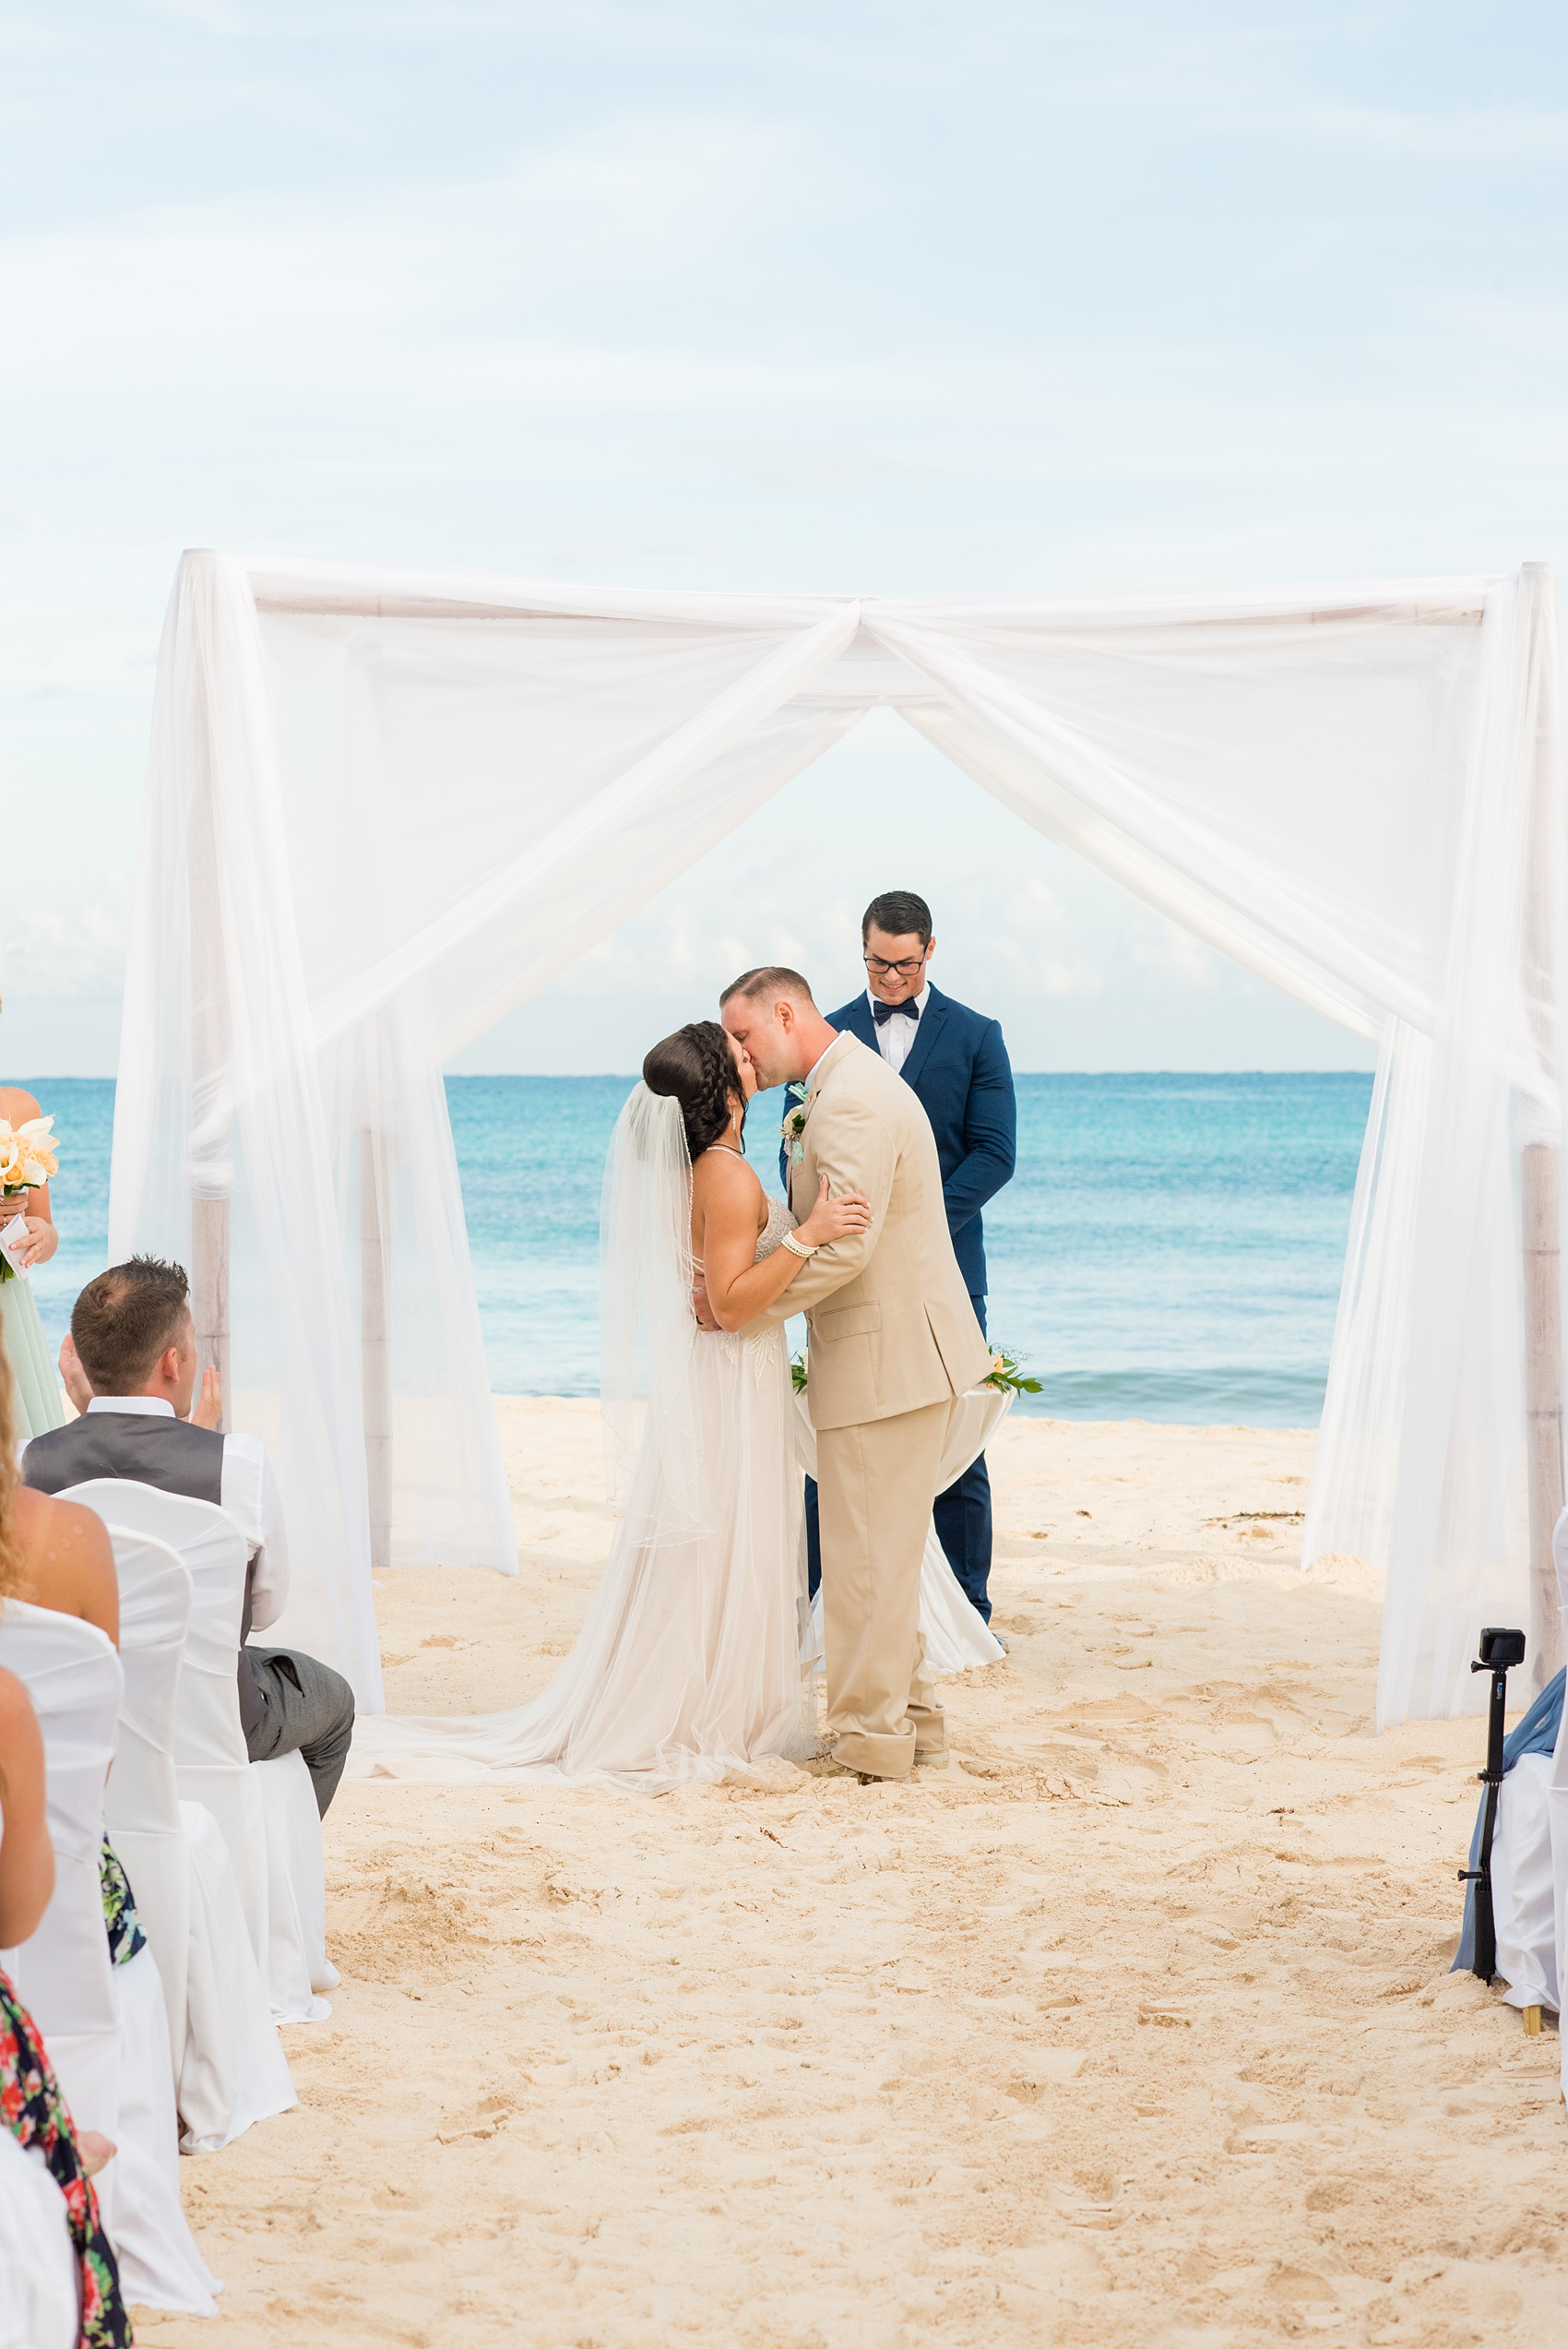 Mikkel Paige Photography photos from a wedding at Grand Paraiso, Mexico, Playa del Carmen Iberostar resort. Picture of the bride and groom's first kiss at their beach ceremony.